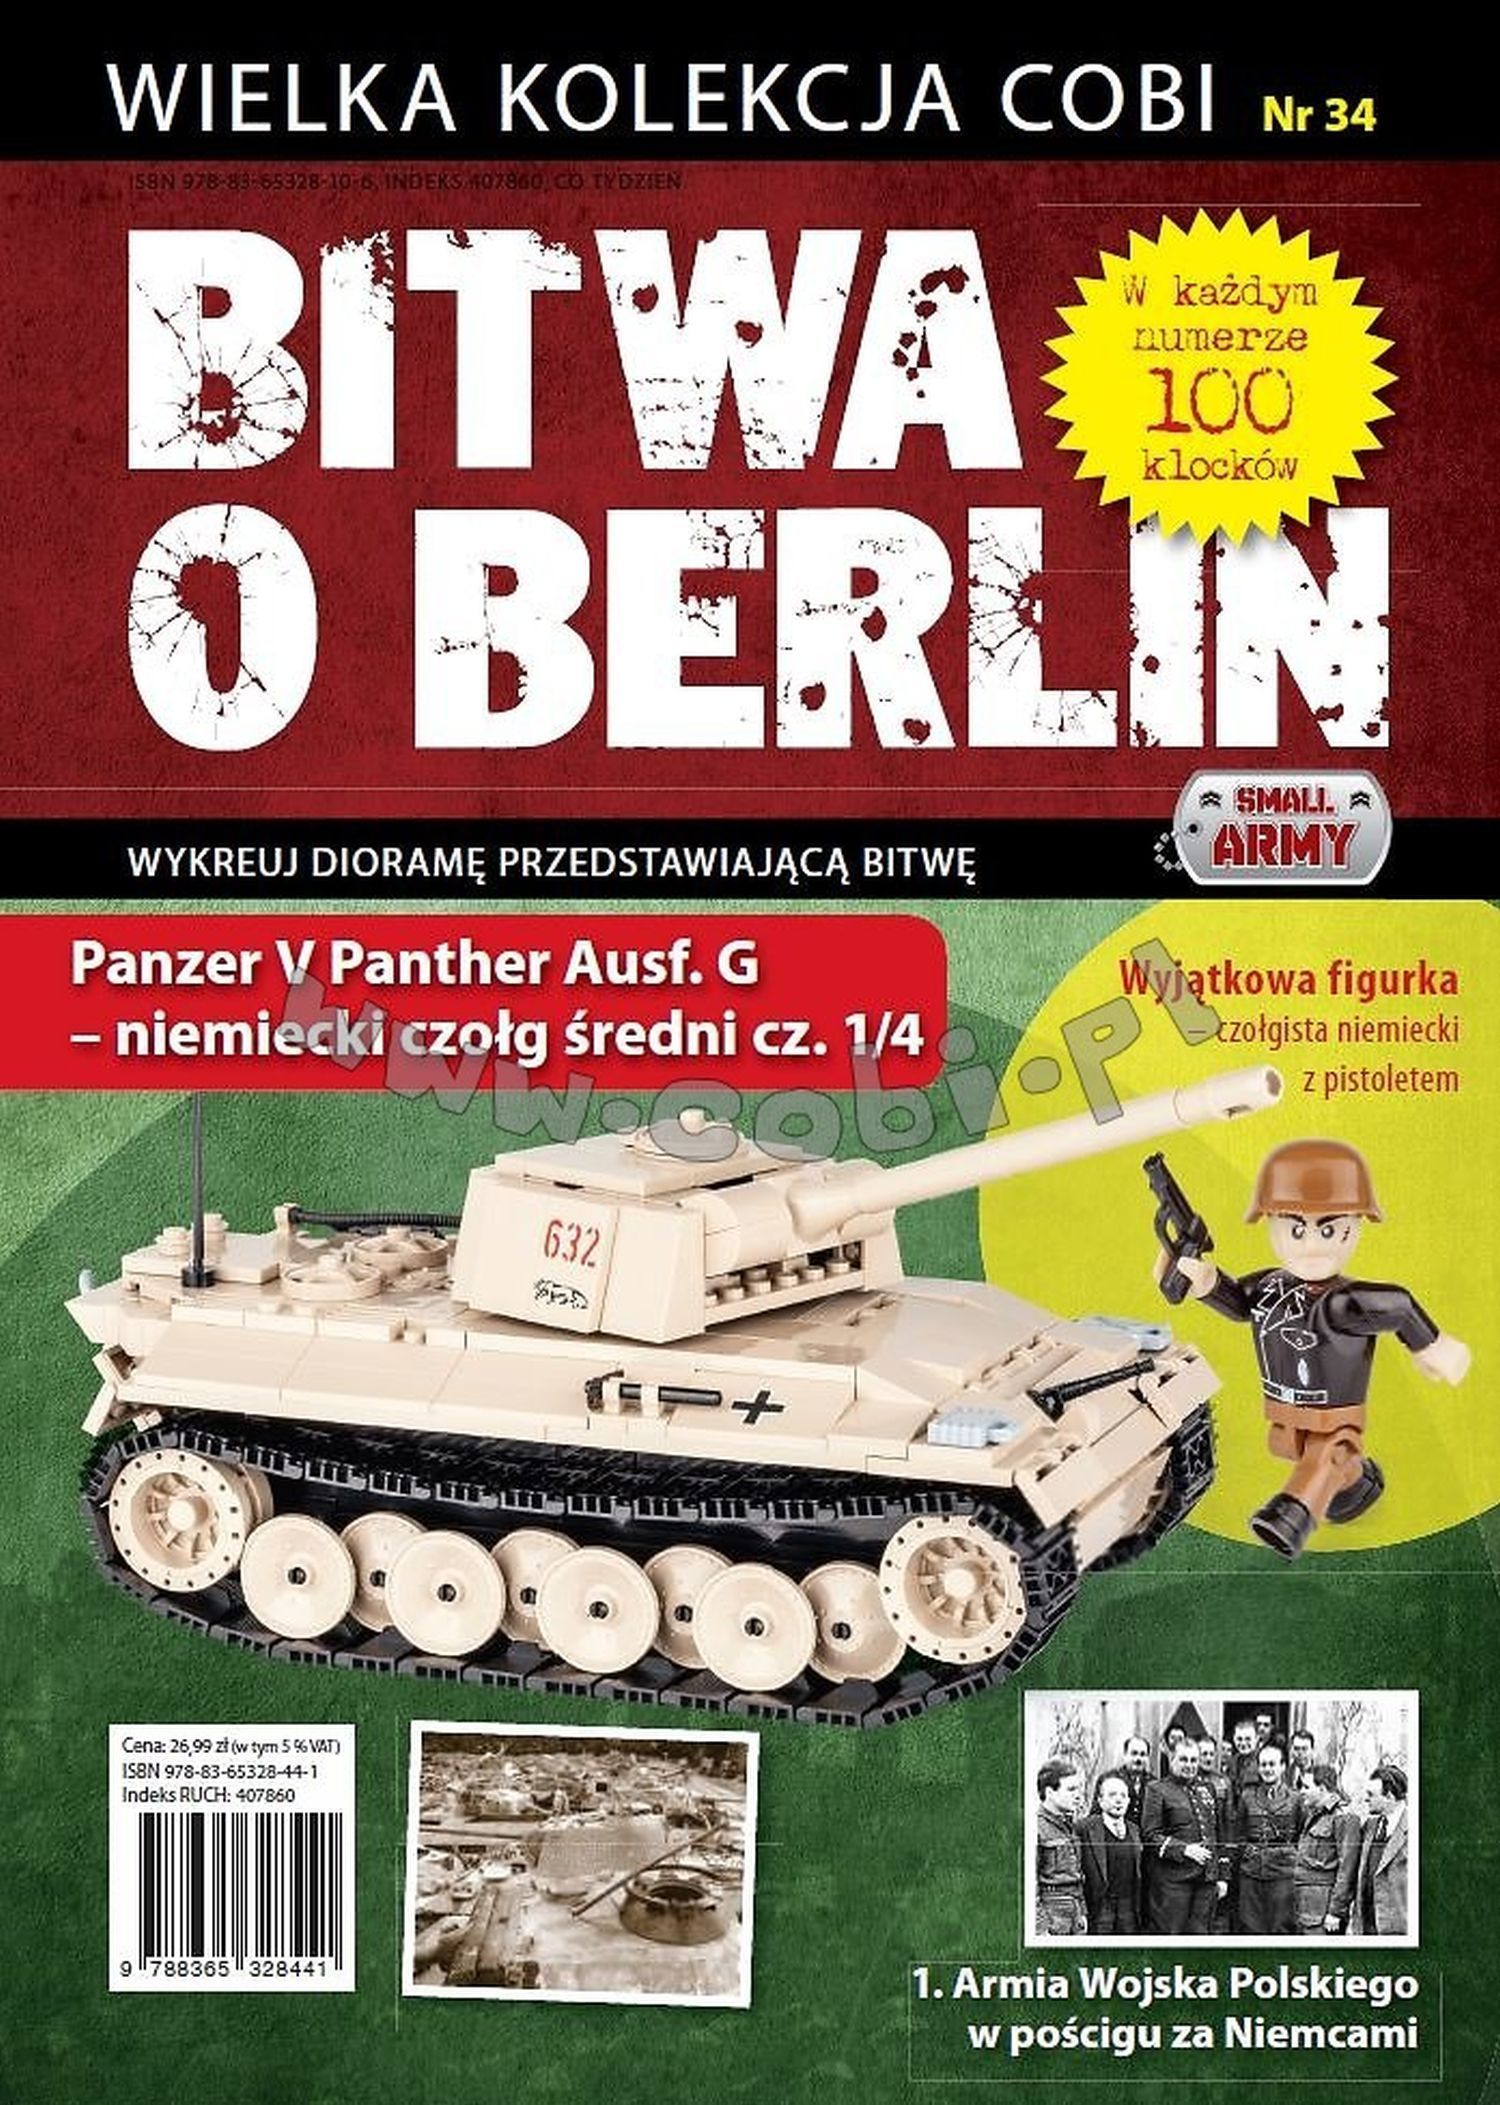 555534_Cobi_2.WK_Sammelheft_34,35,36,37_Panther_www-super-bricks.de_1_Cobi_2.WK_www-super-bricks.de